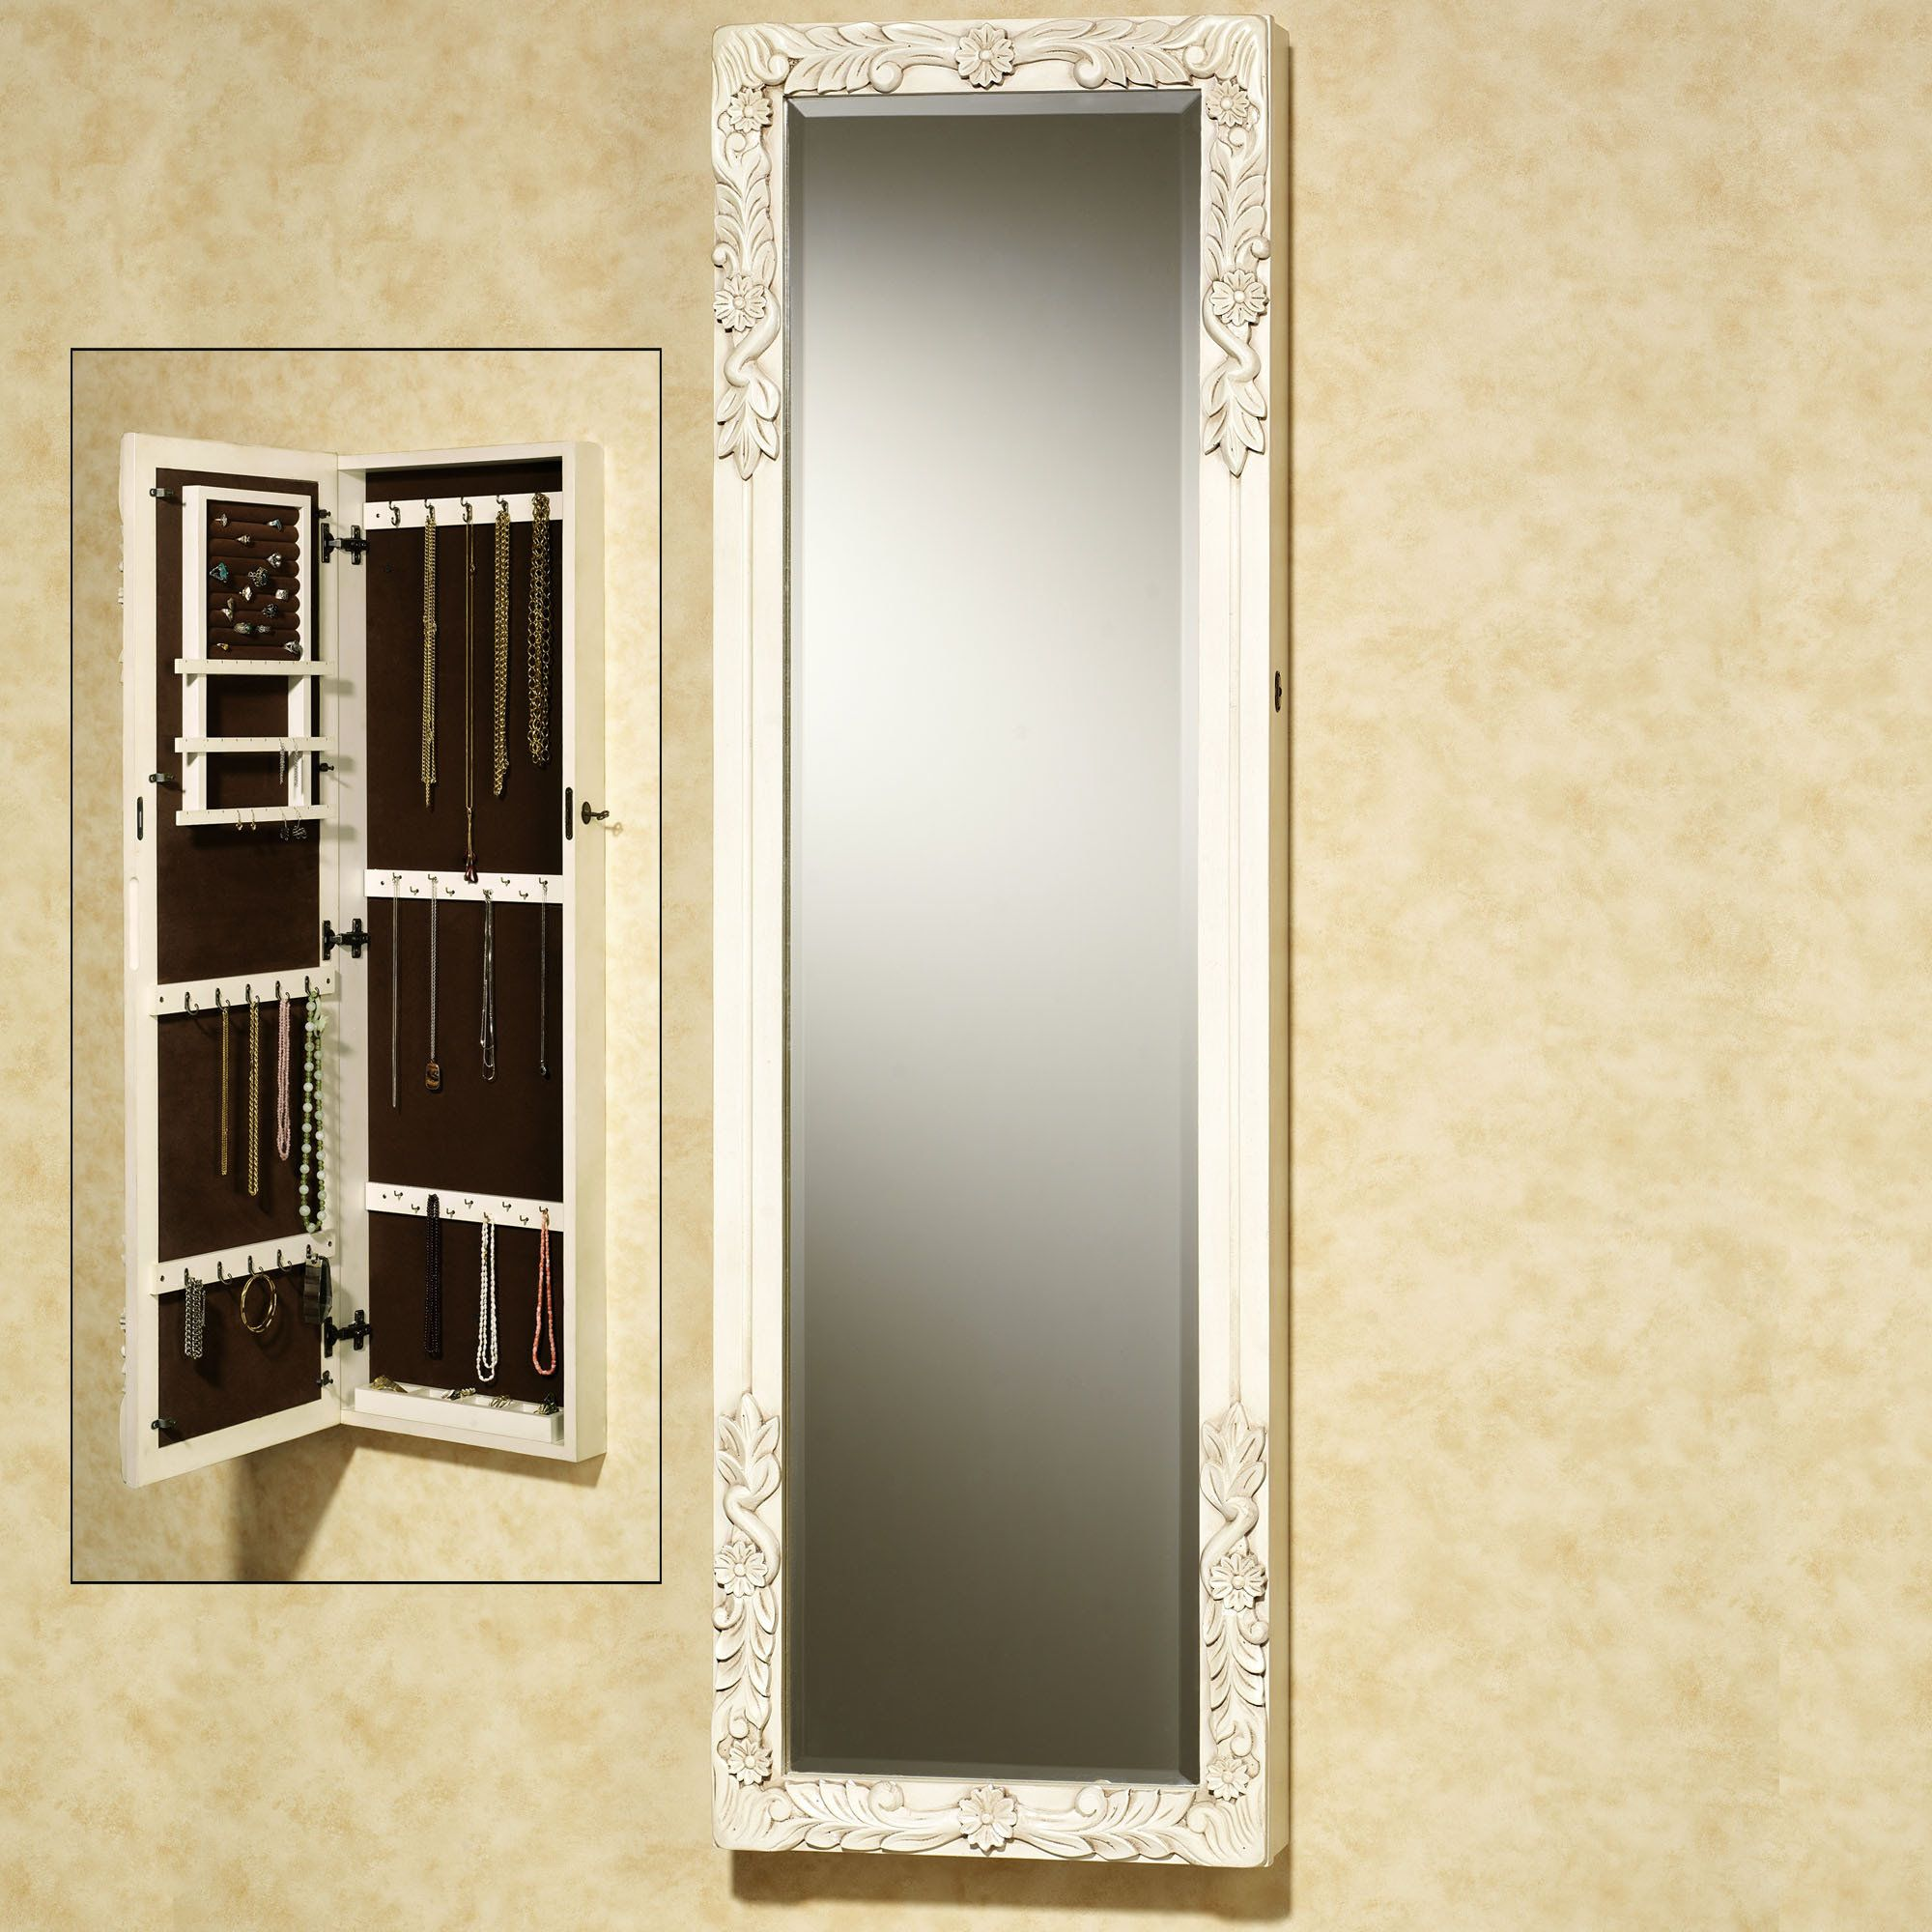 Viviana Jewelry Mirror A Mirror With A Built In Jewelry